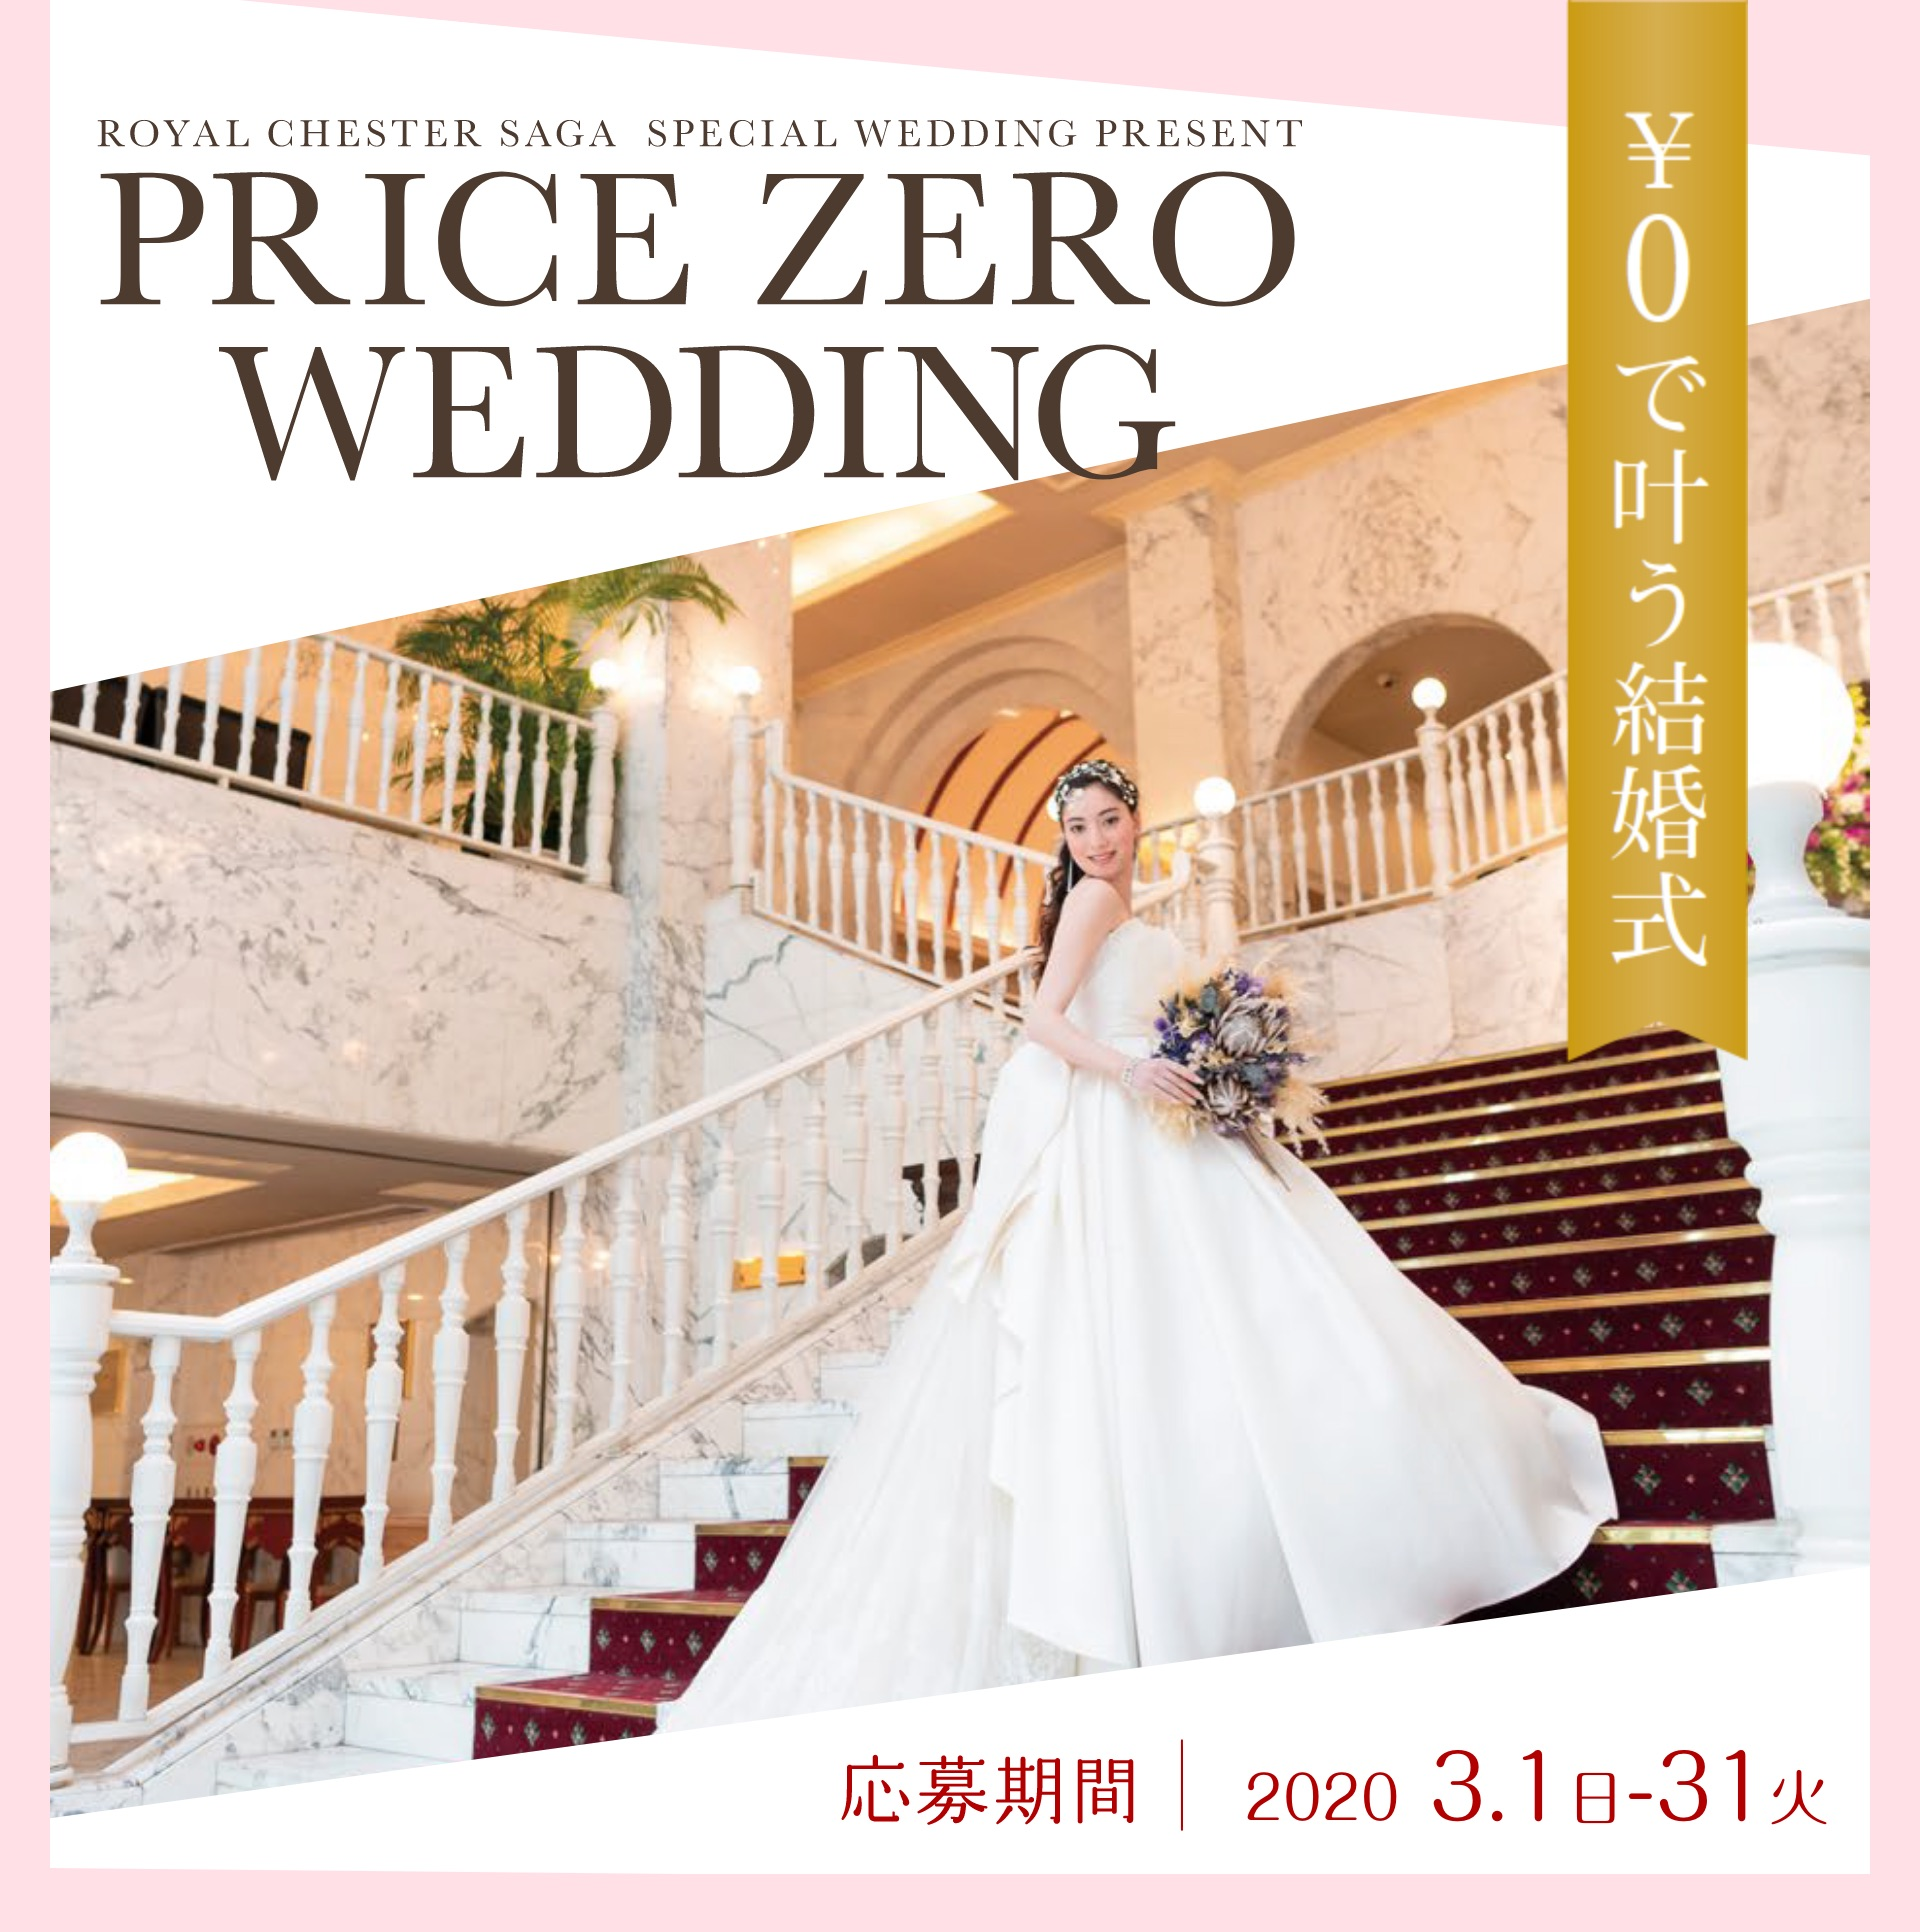 PRICE ZERO WEDDING